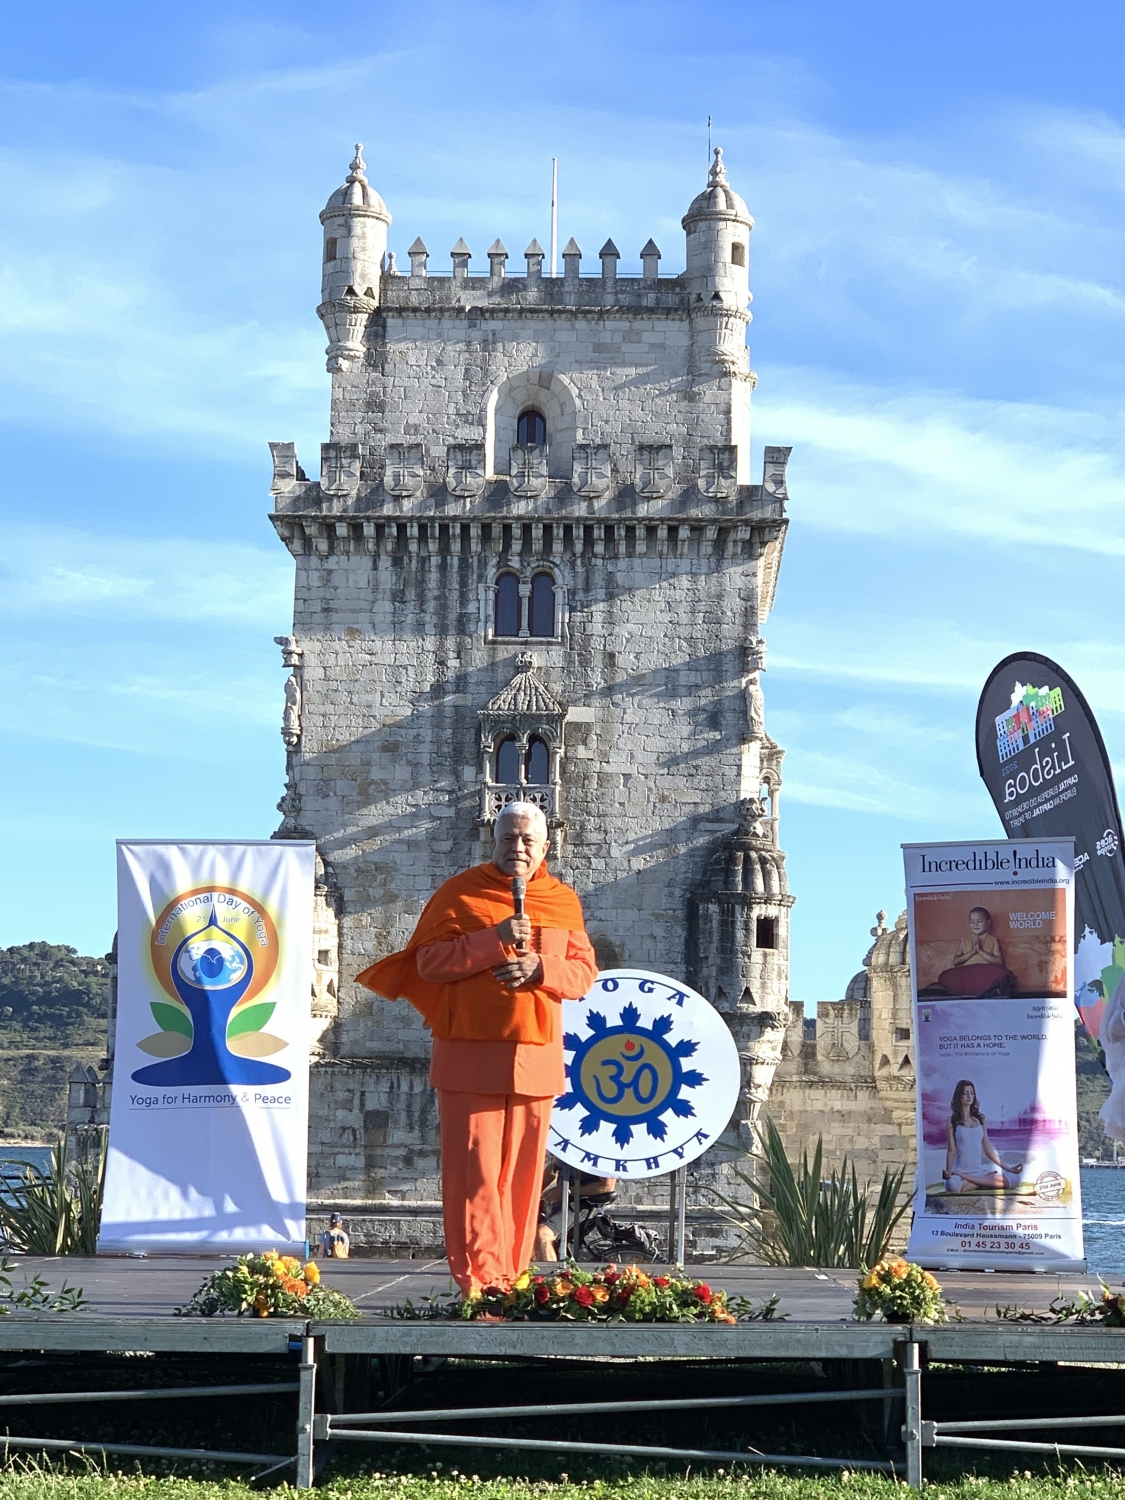 IDY - 2019, June, 21st - Belém - H.H. Param Guru Amrta Súryánanda Mahá Rája President of the European Yoga Confederation and of the Portuguese Yoga Confederation